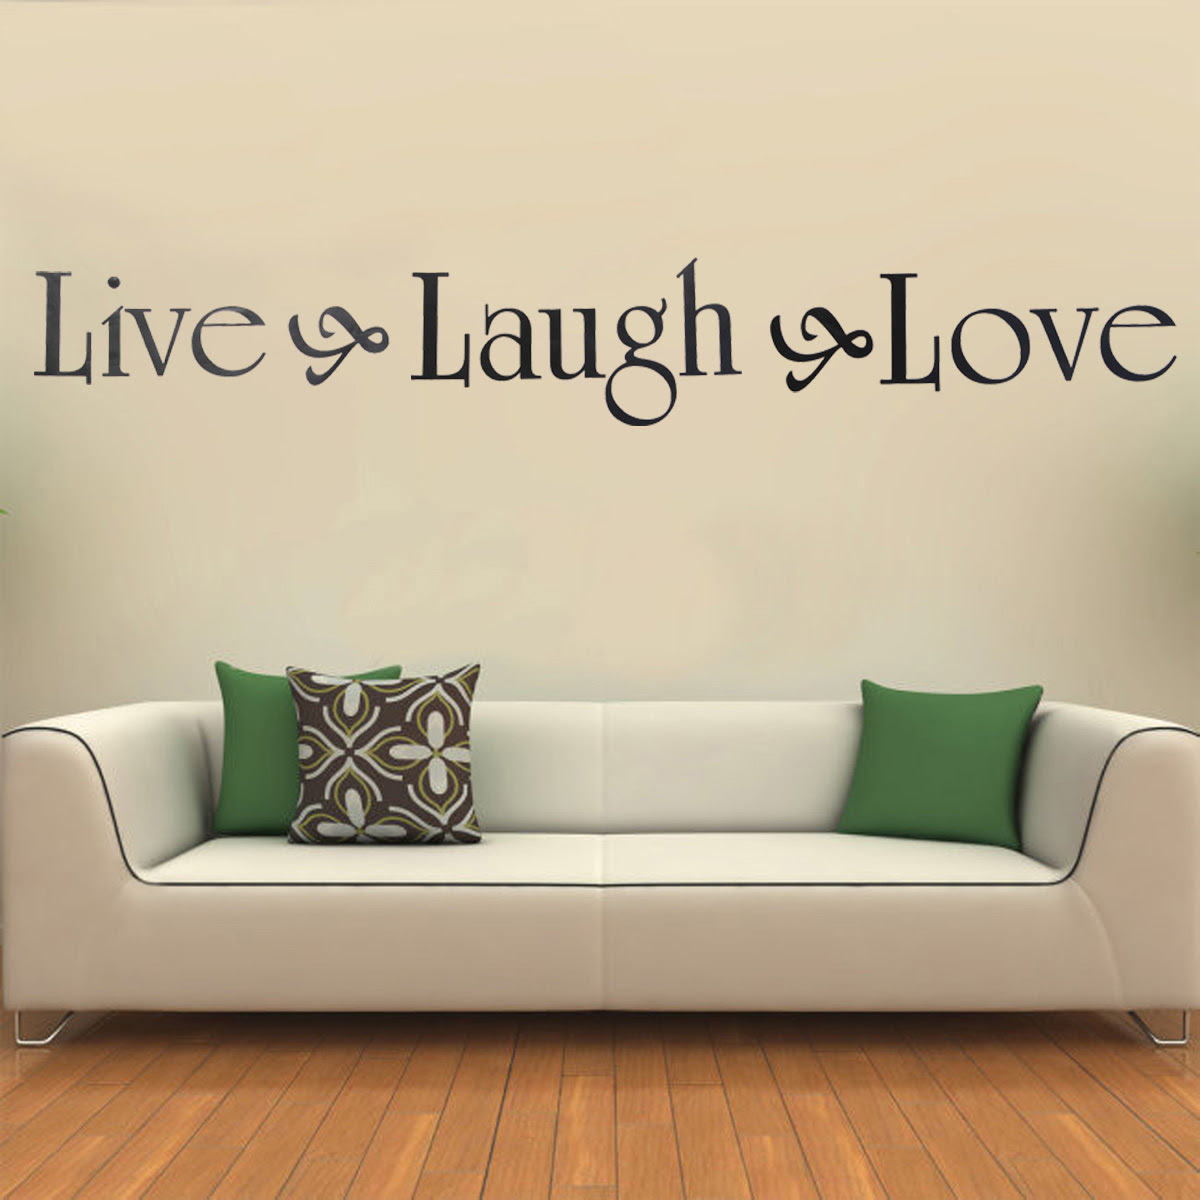 DIY Fashion Vinyl Art Quote Words Wall Stickers Home Decal Removable Mural Decor  eBay